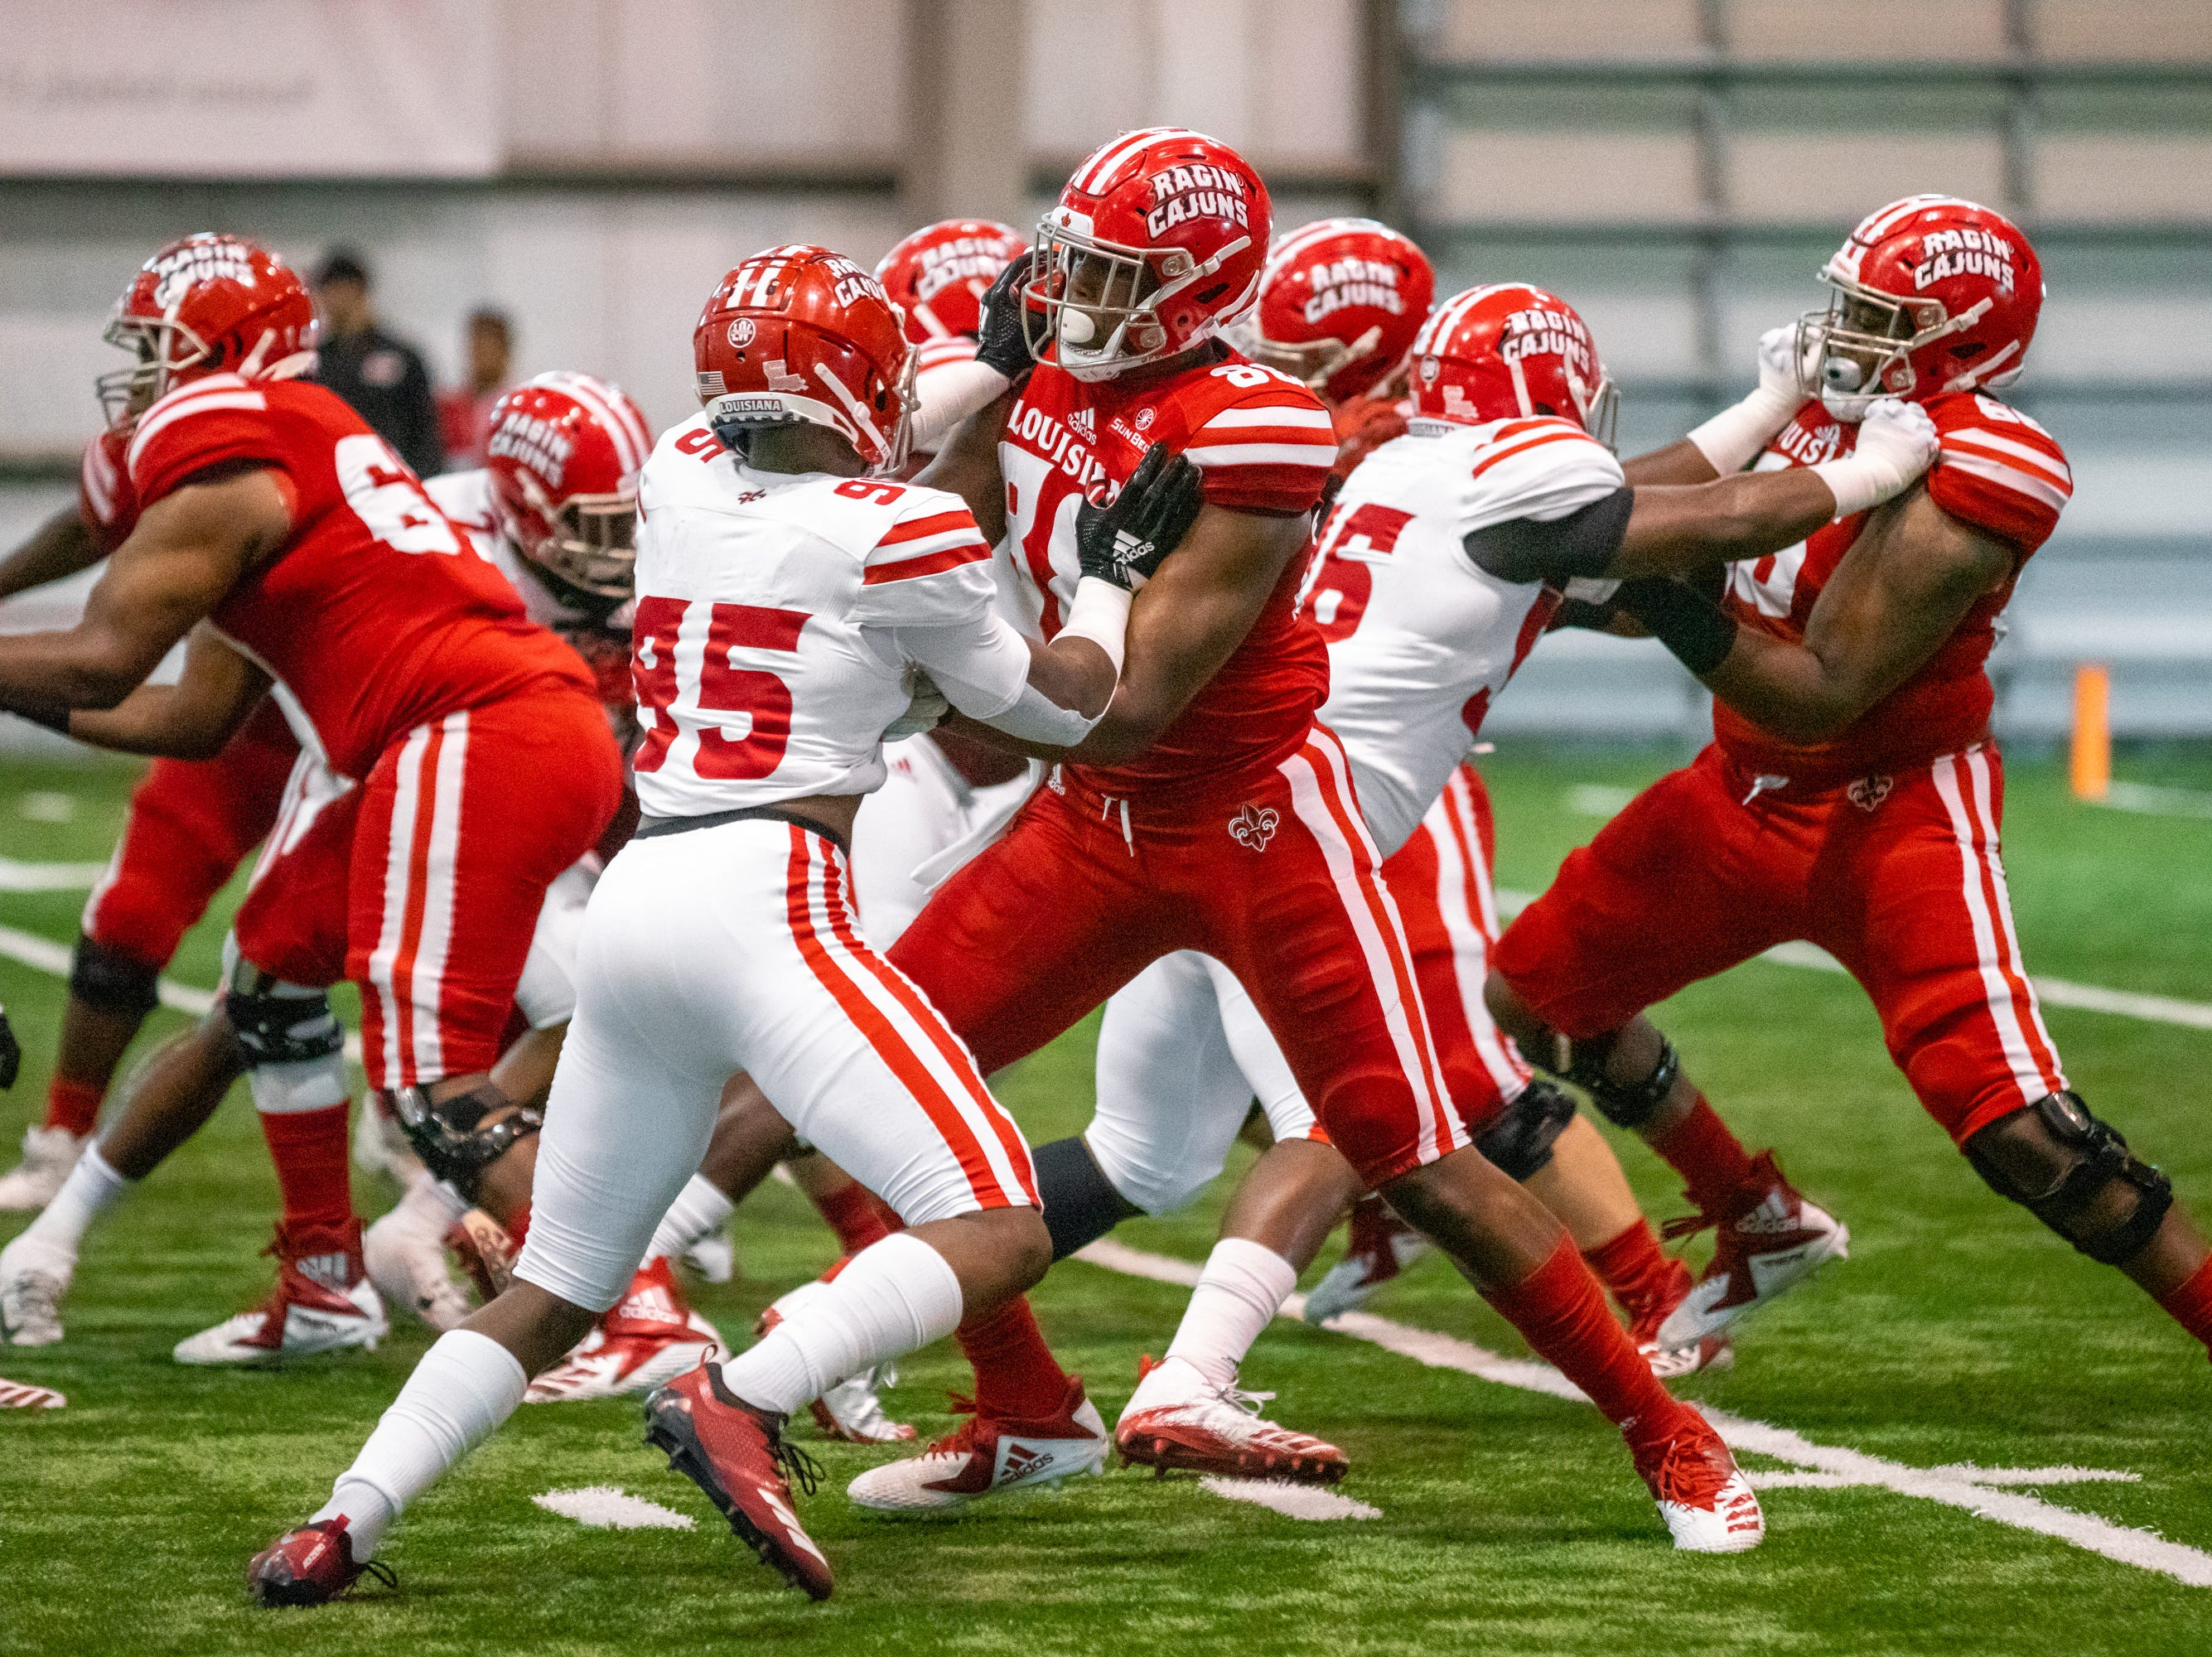 UL's lineman battle with one another on the field as the Ragin' Cajuns football team plays their annual Spring football game against one another in the Leon Moncla trainig facility on April 13, 2019.